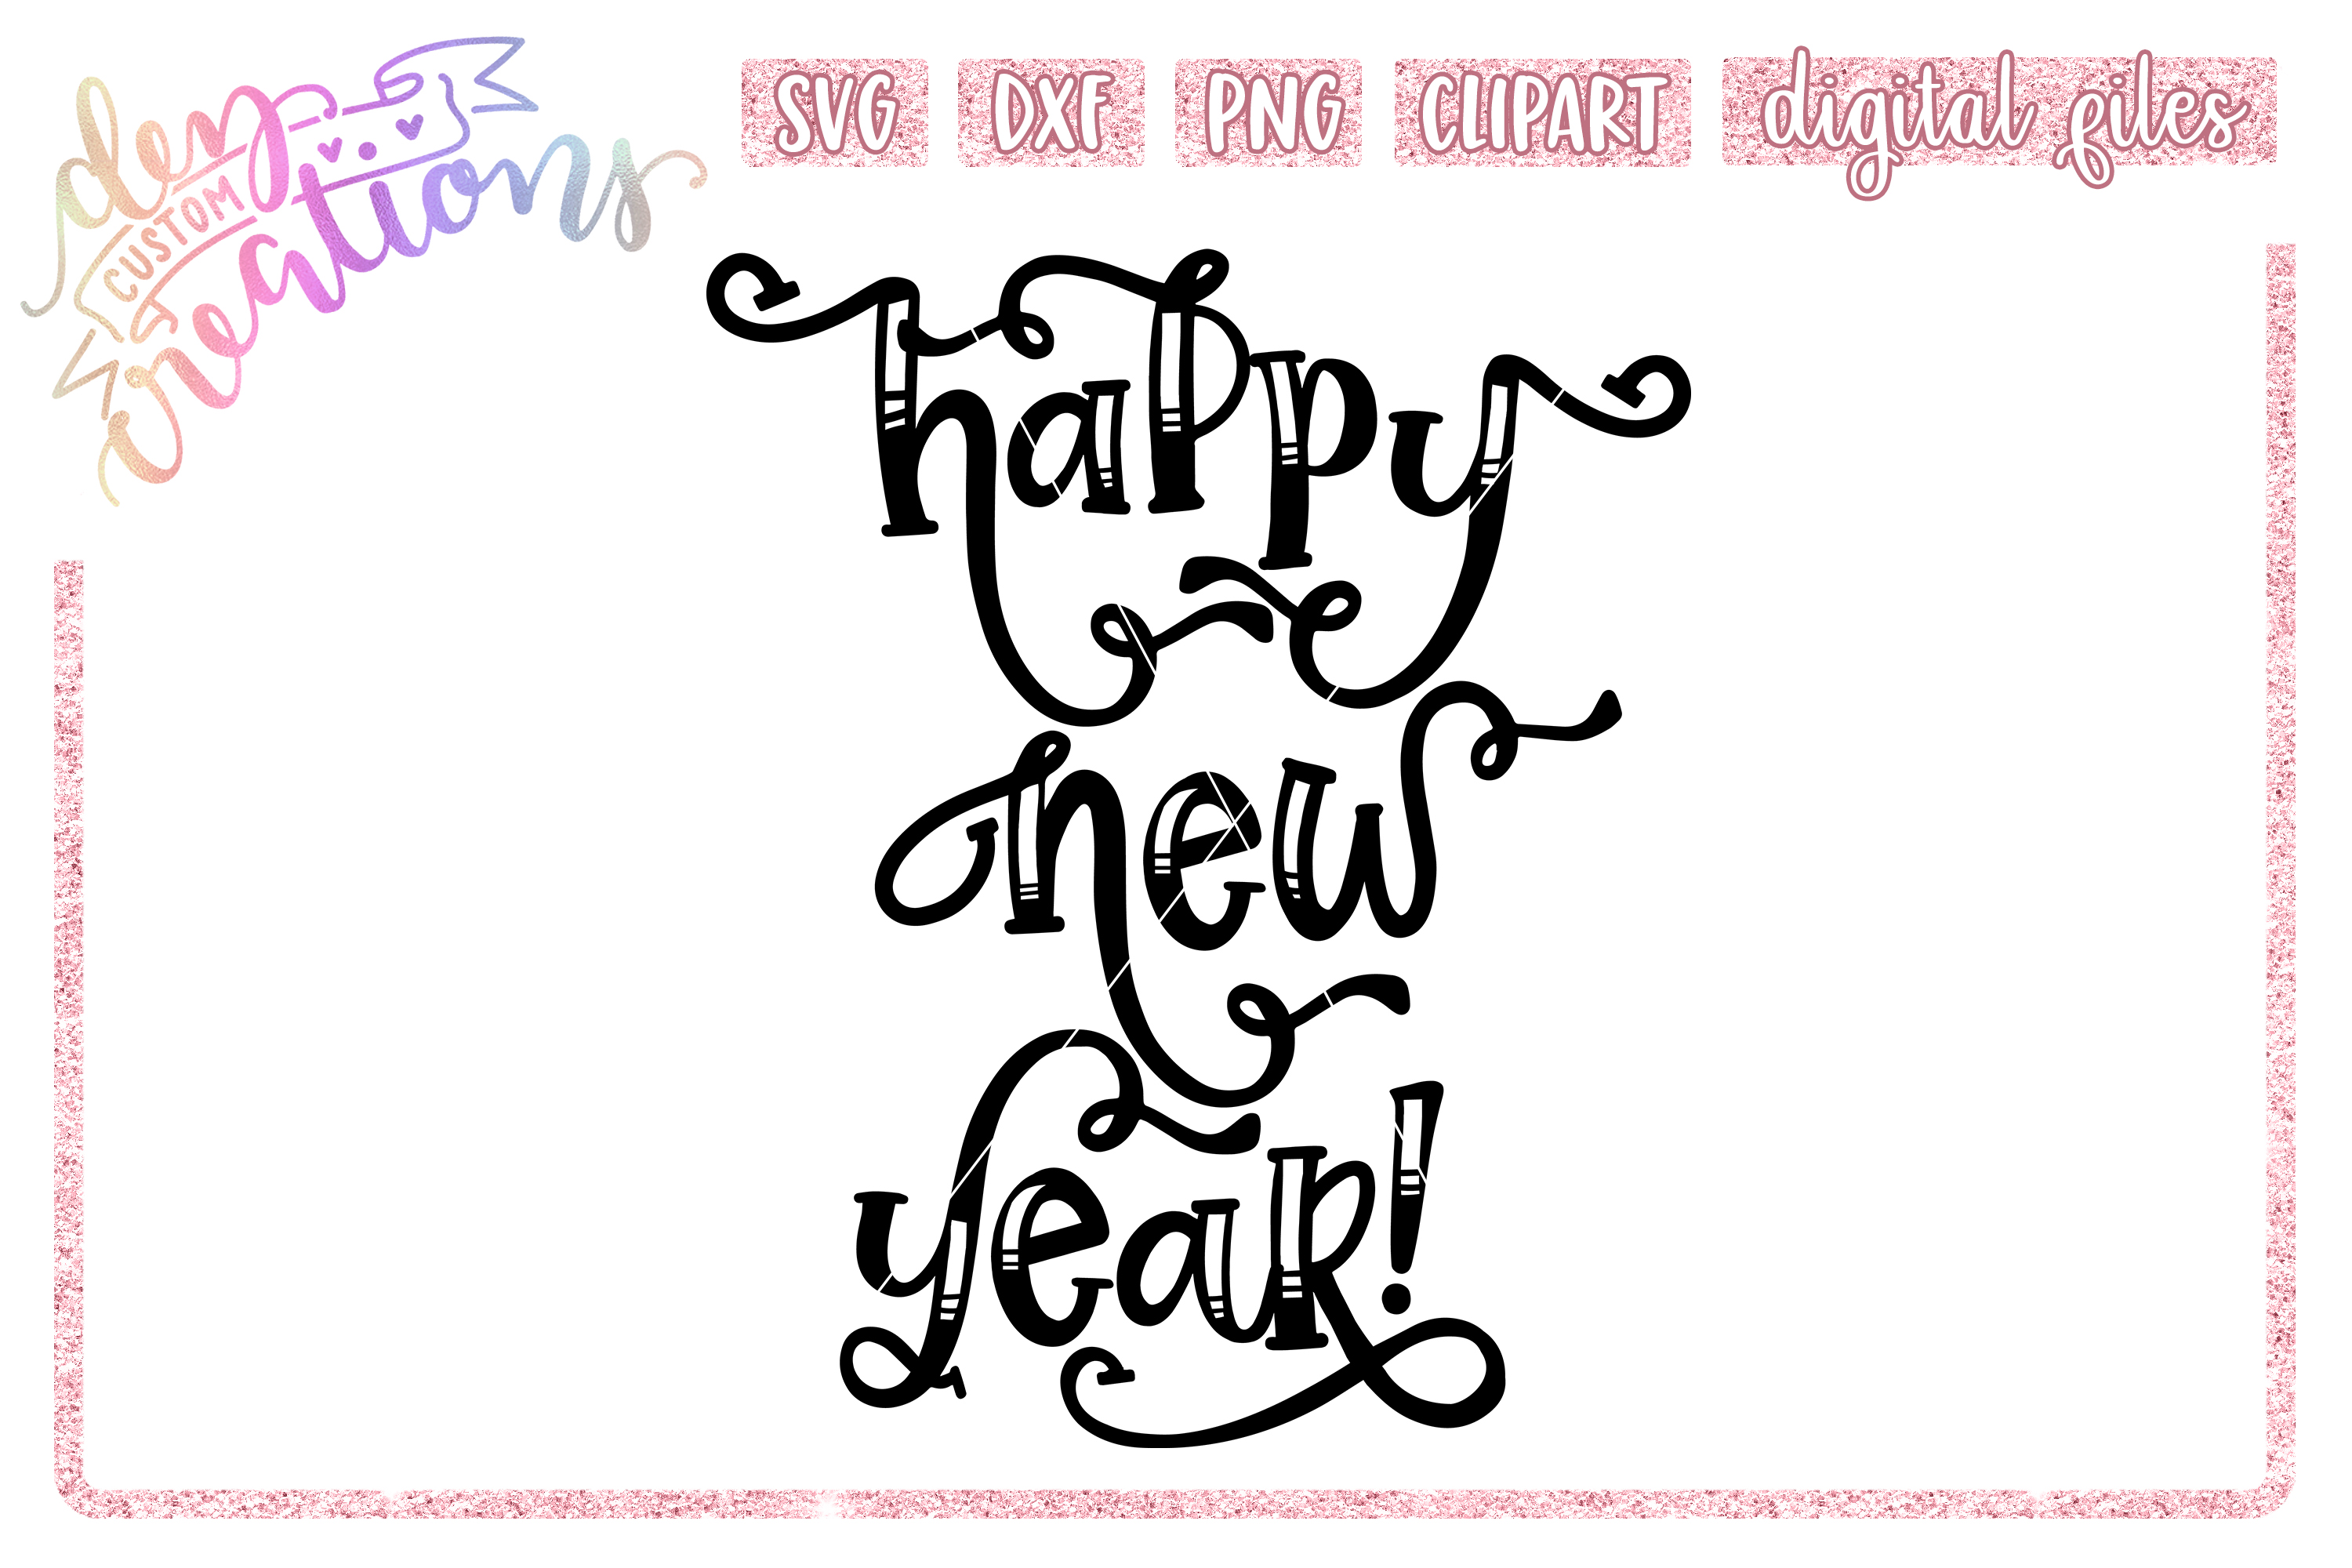 Happy New Year - SVG DXF PNG - Digital Craft File example image 1